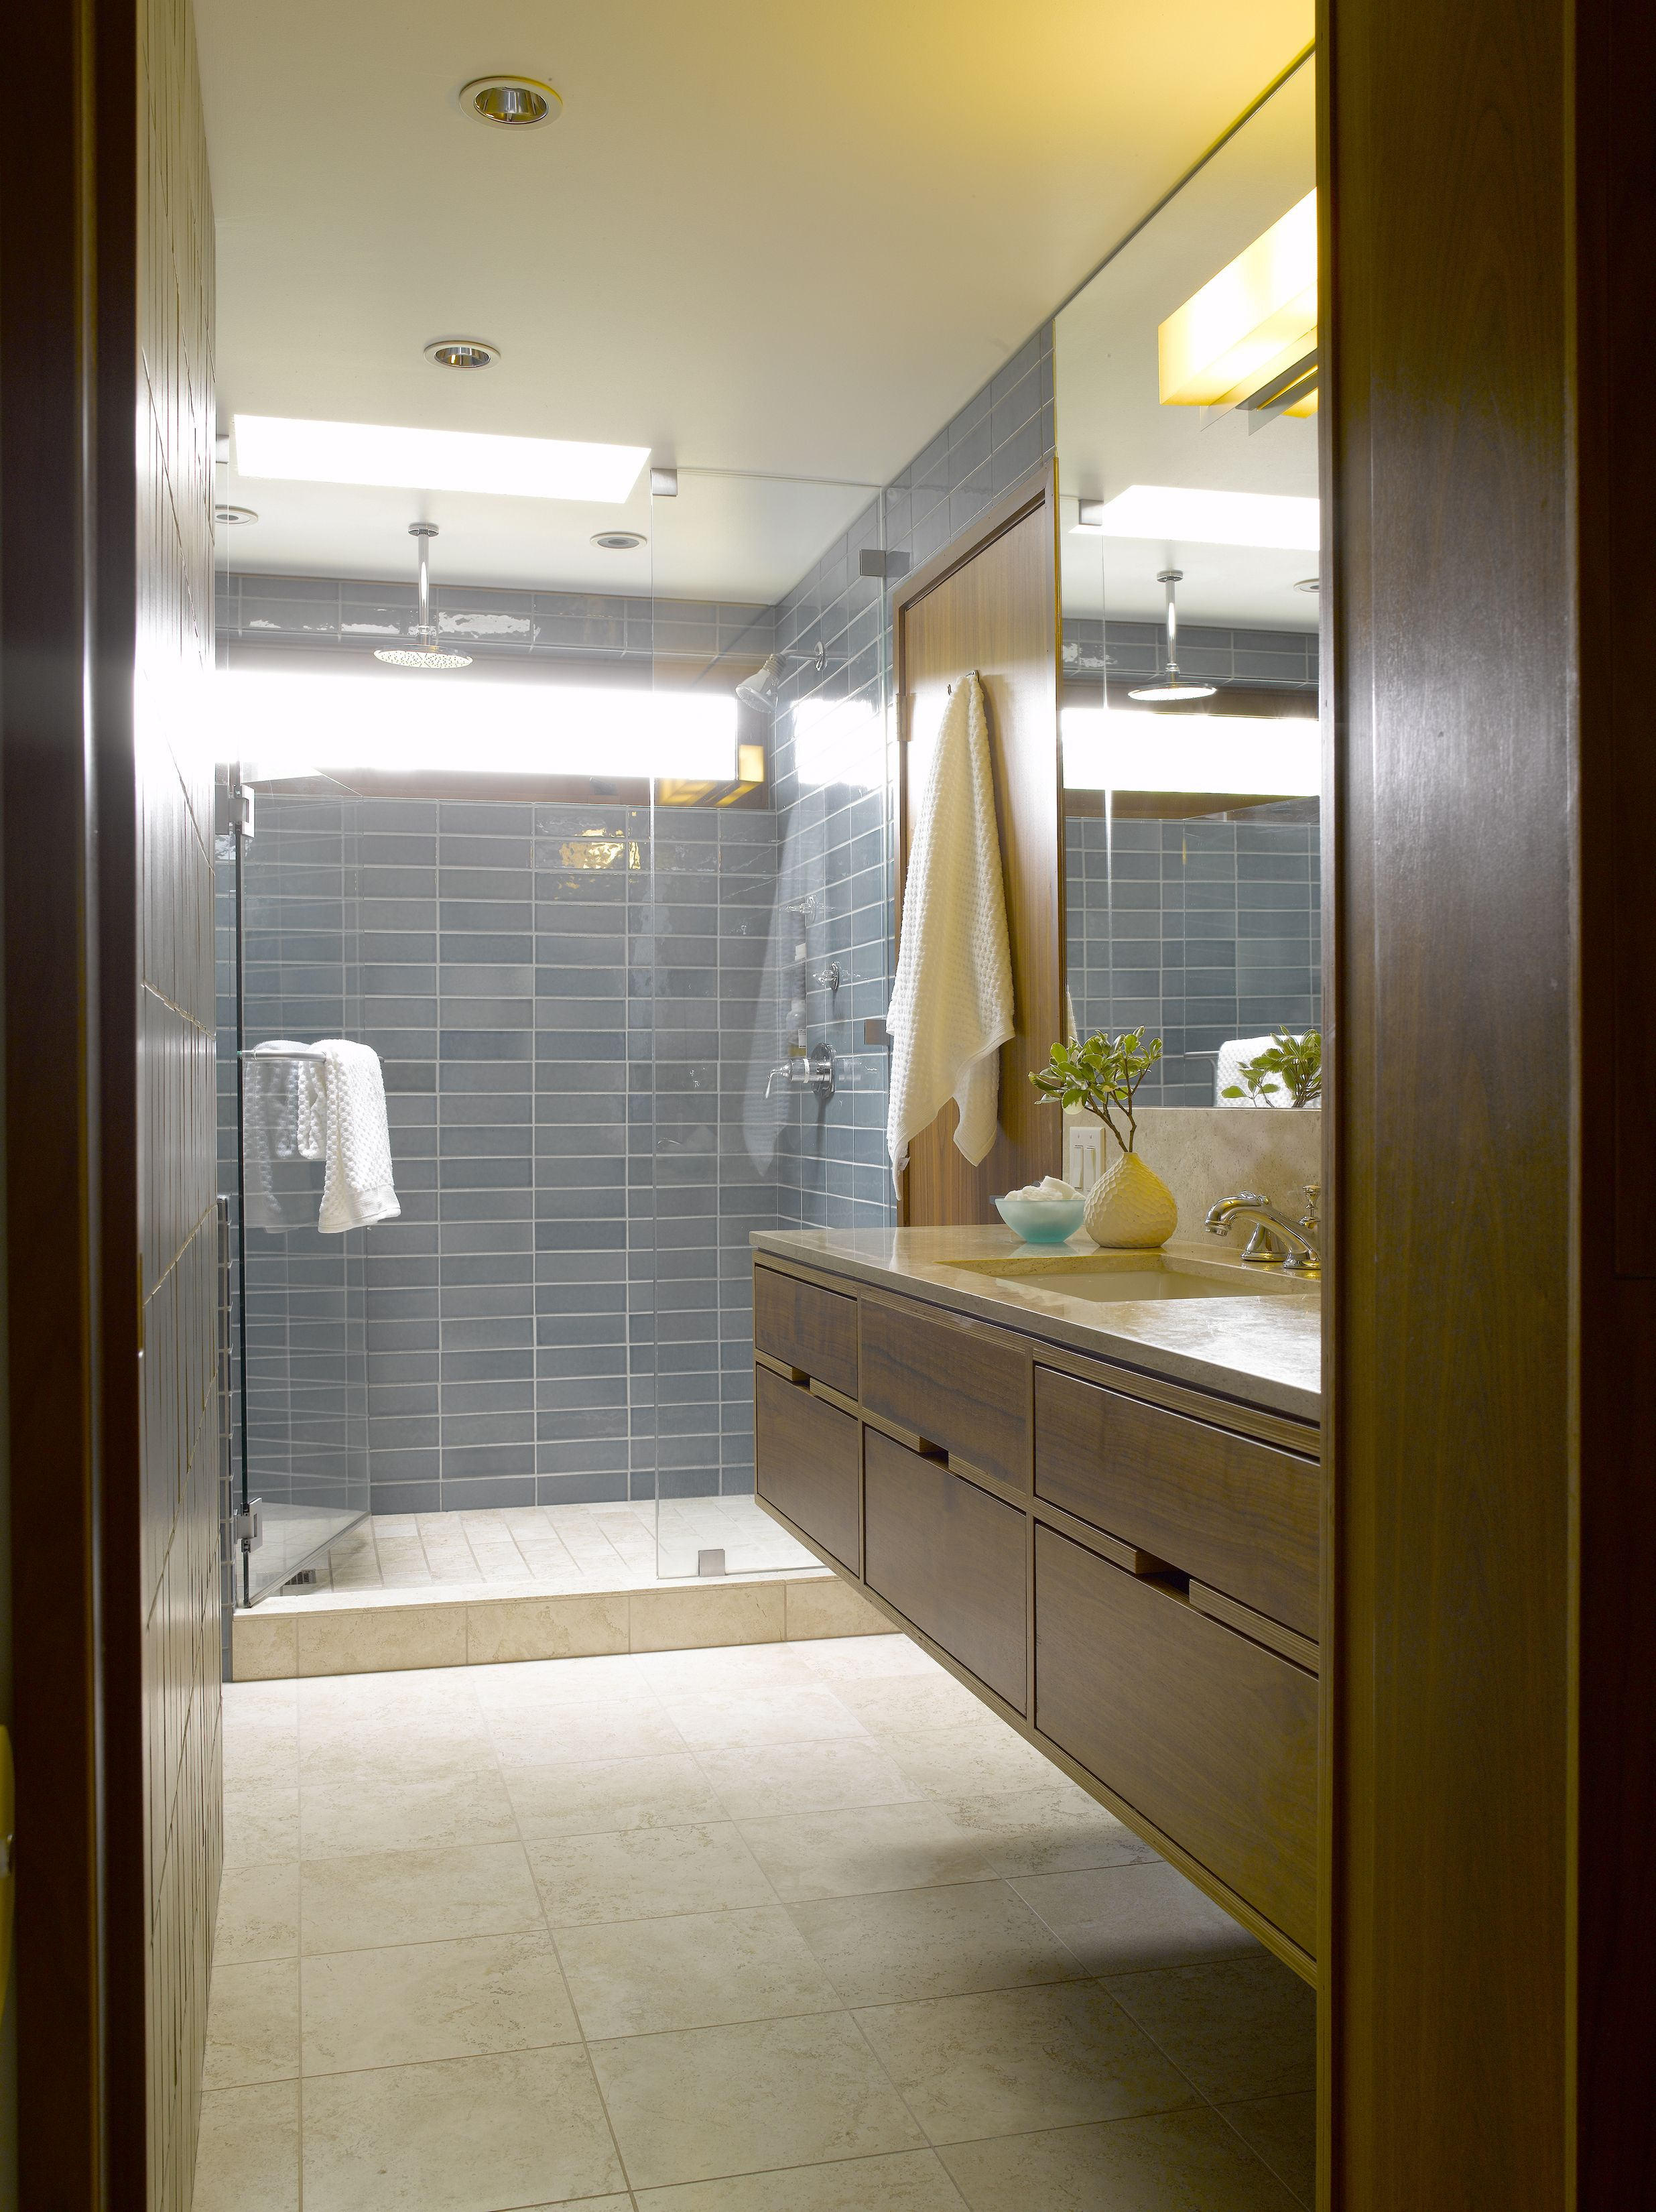 1000 images about bathroom reno on pinterest mid century bathroom mid century and modern bathrooms bathroom mid century